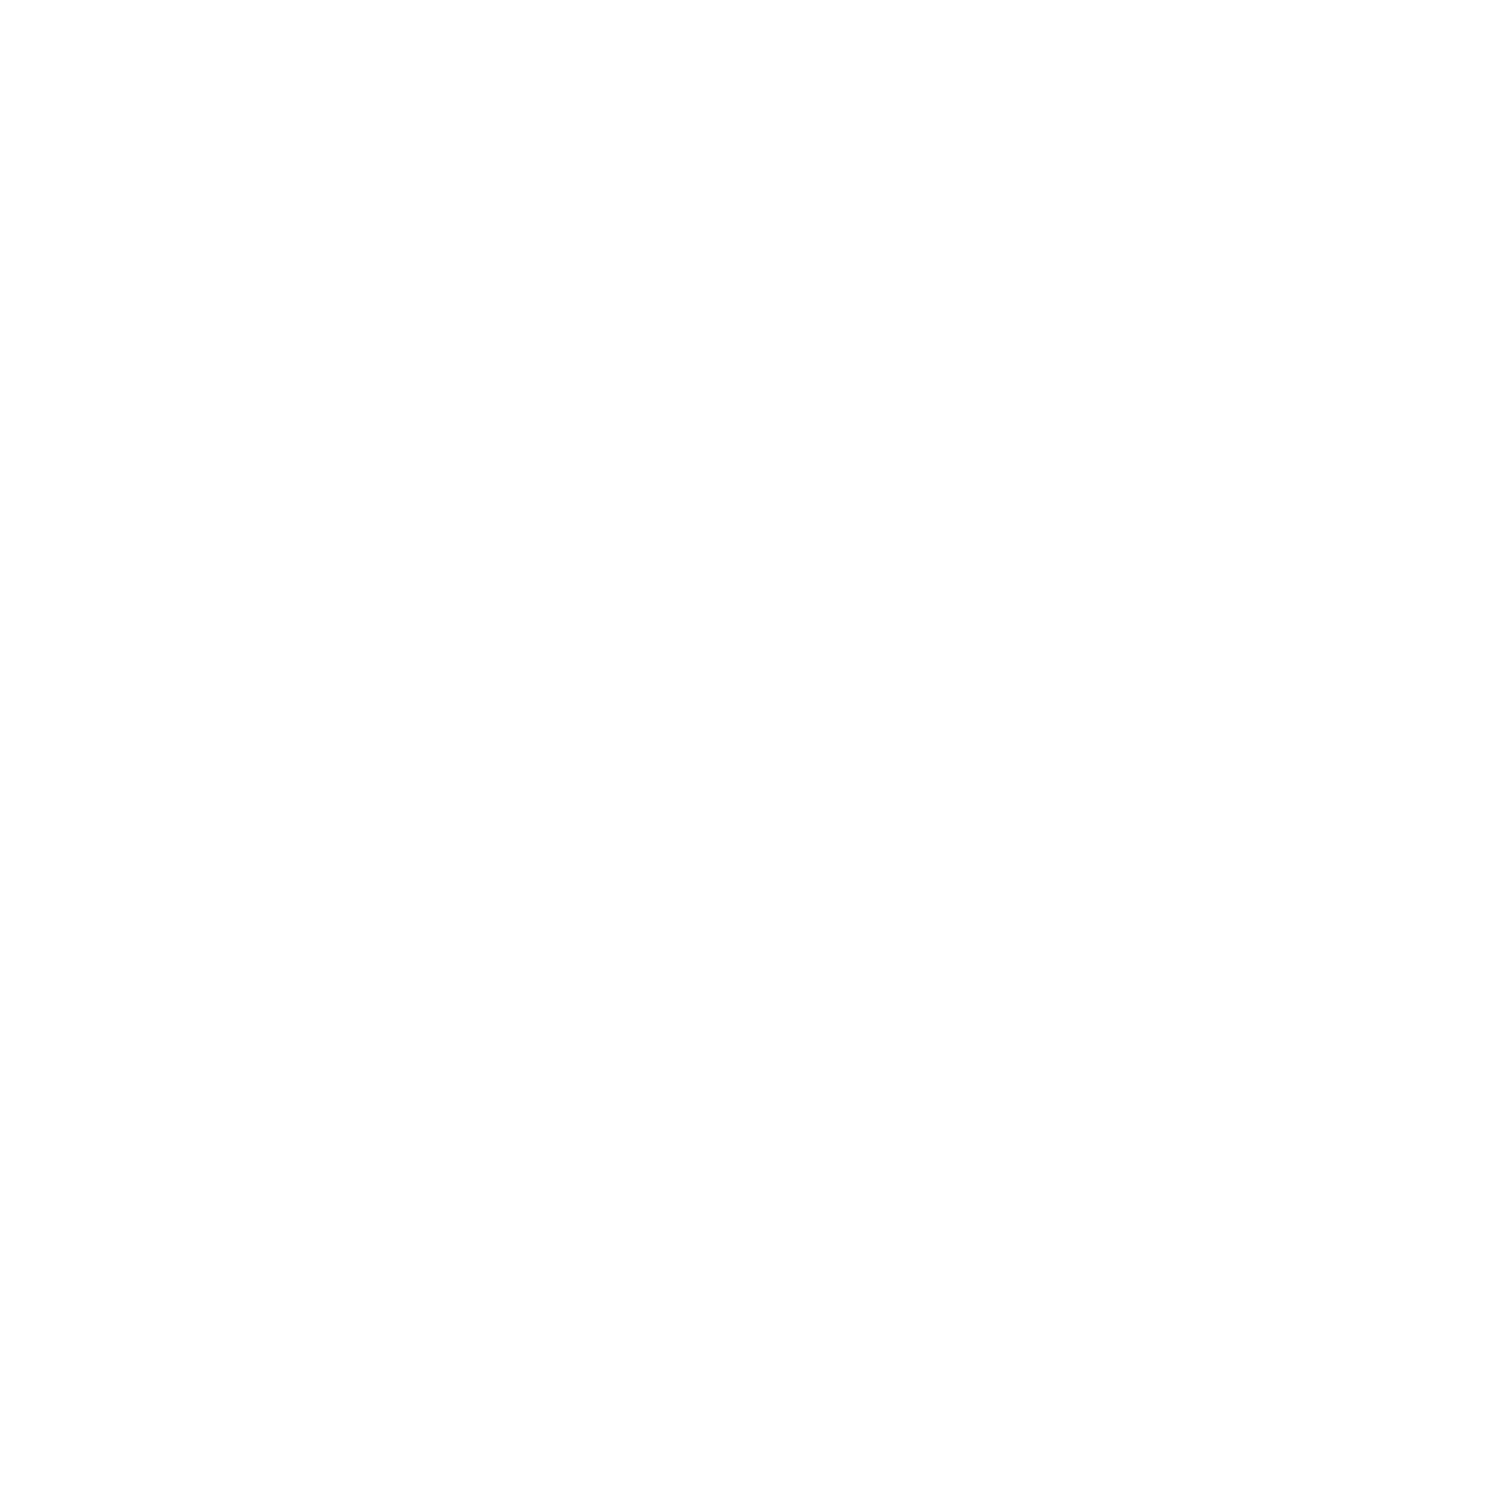 201 Labs | DFW Mobile App Development and Game Development Company